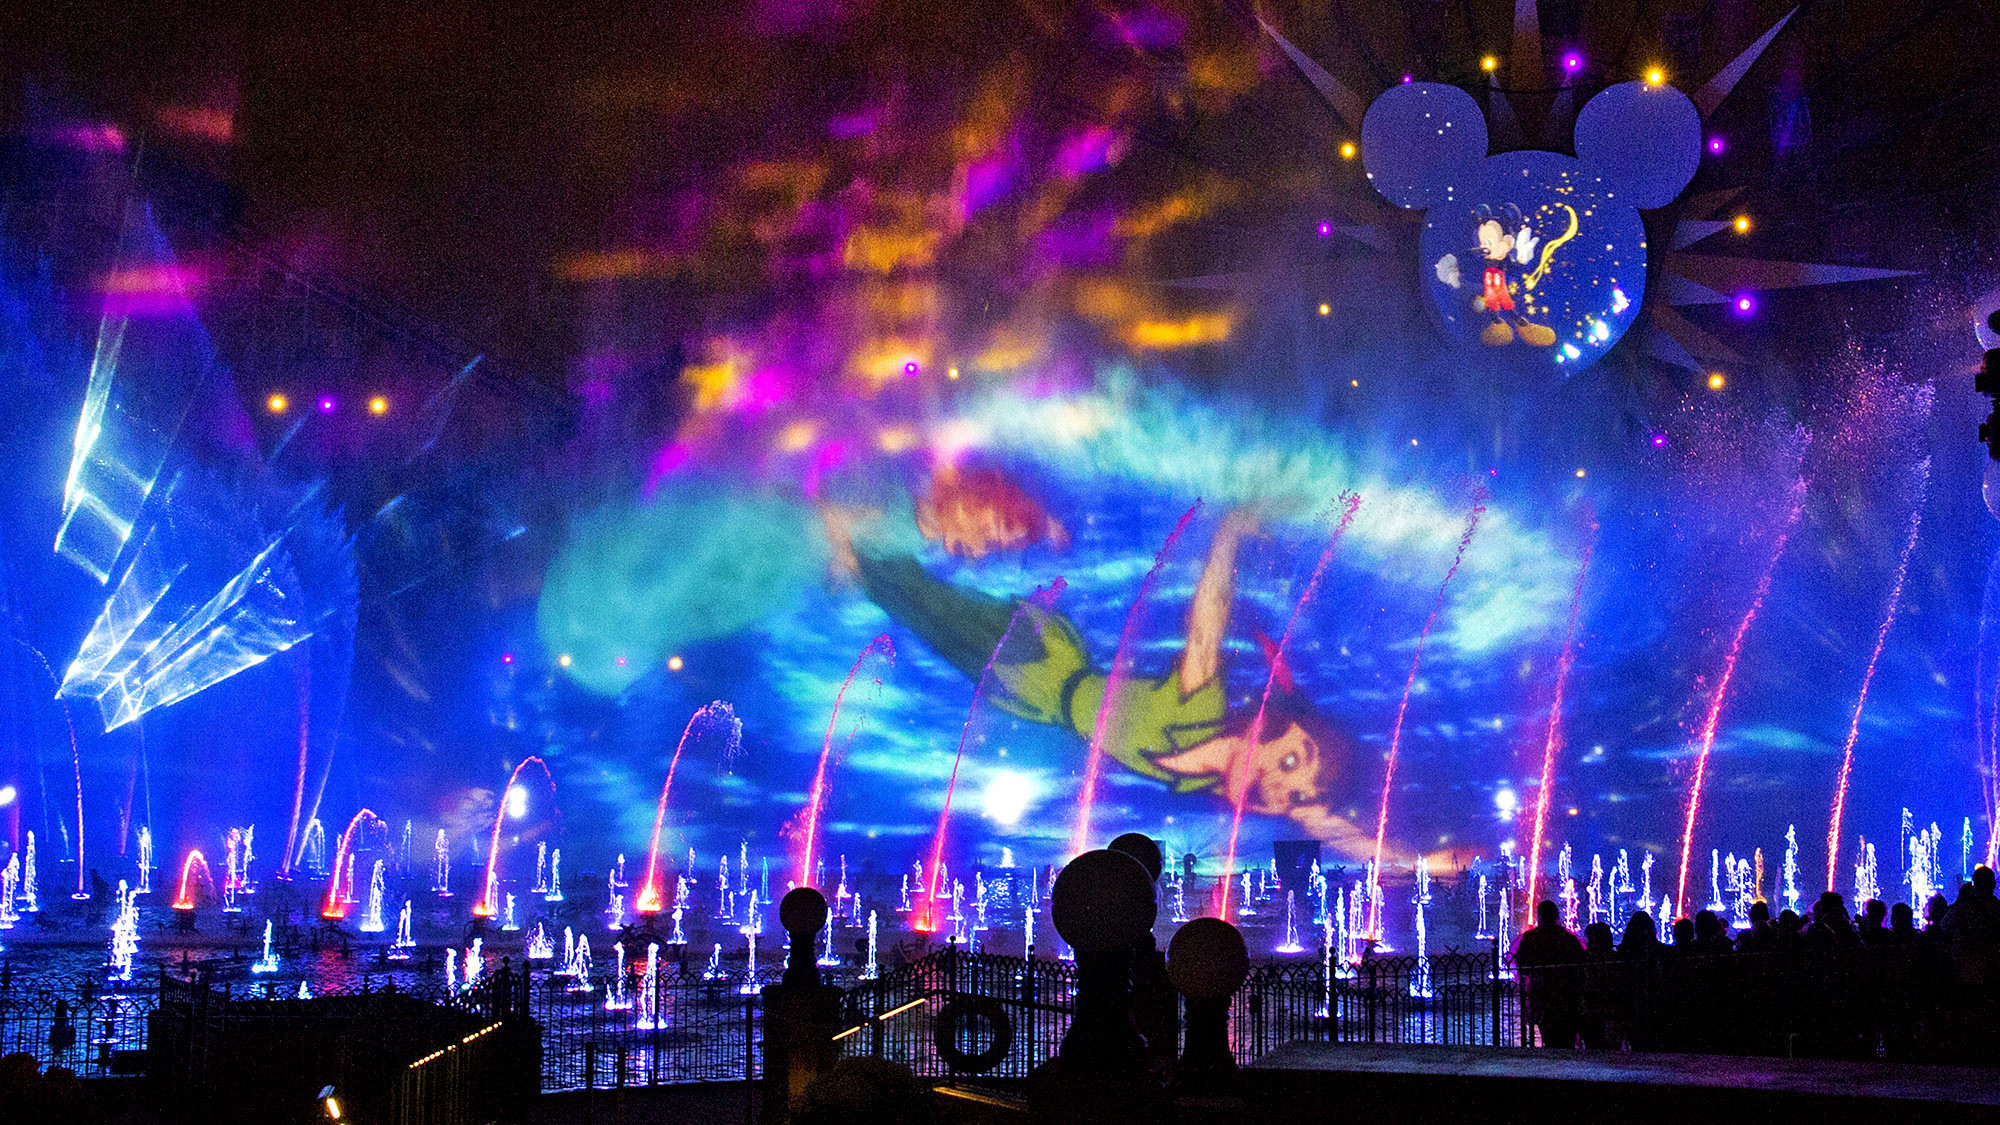 For Disneyland's 60th, there's Mickey, Minnie and cutting-edge technology